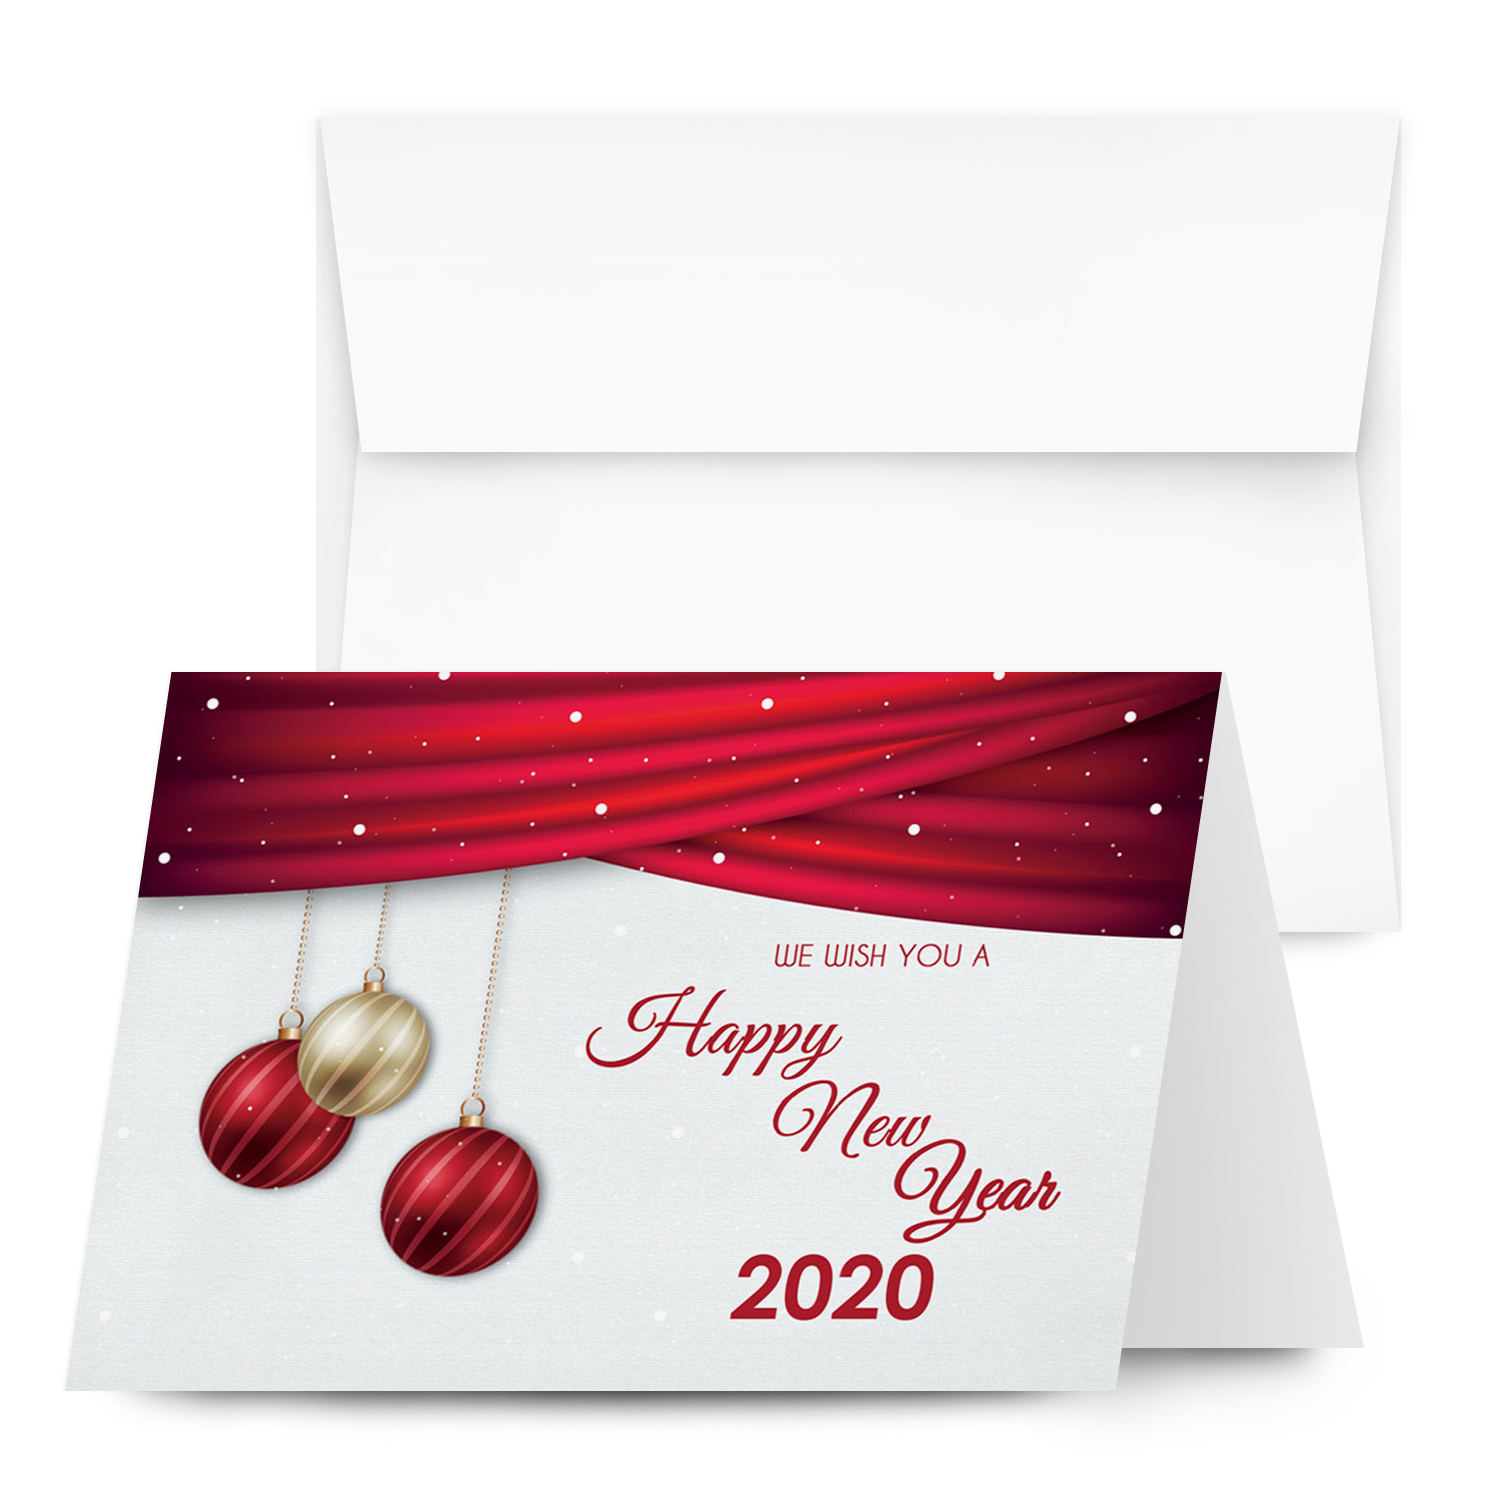 4 1/4″ X 5.5″ Holiday Folding Cards with Envelopes